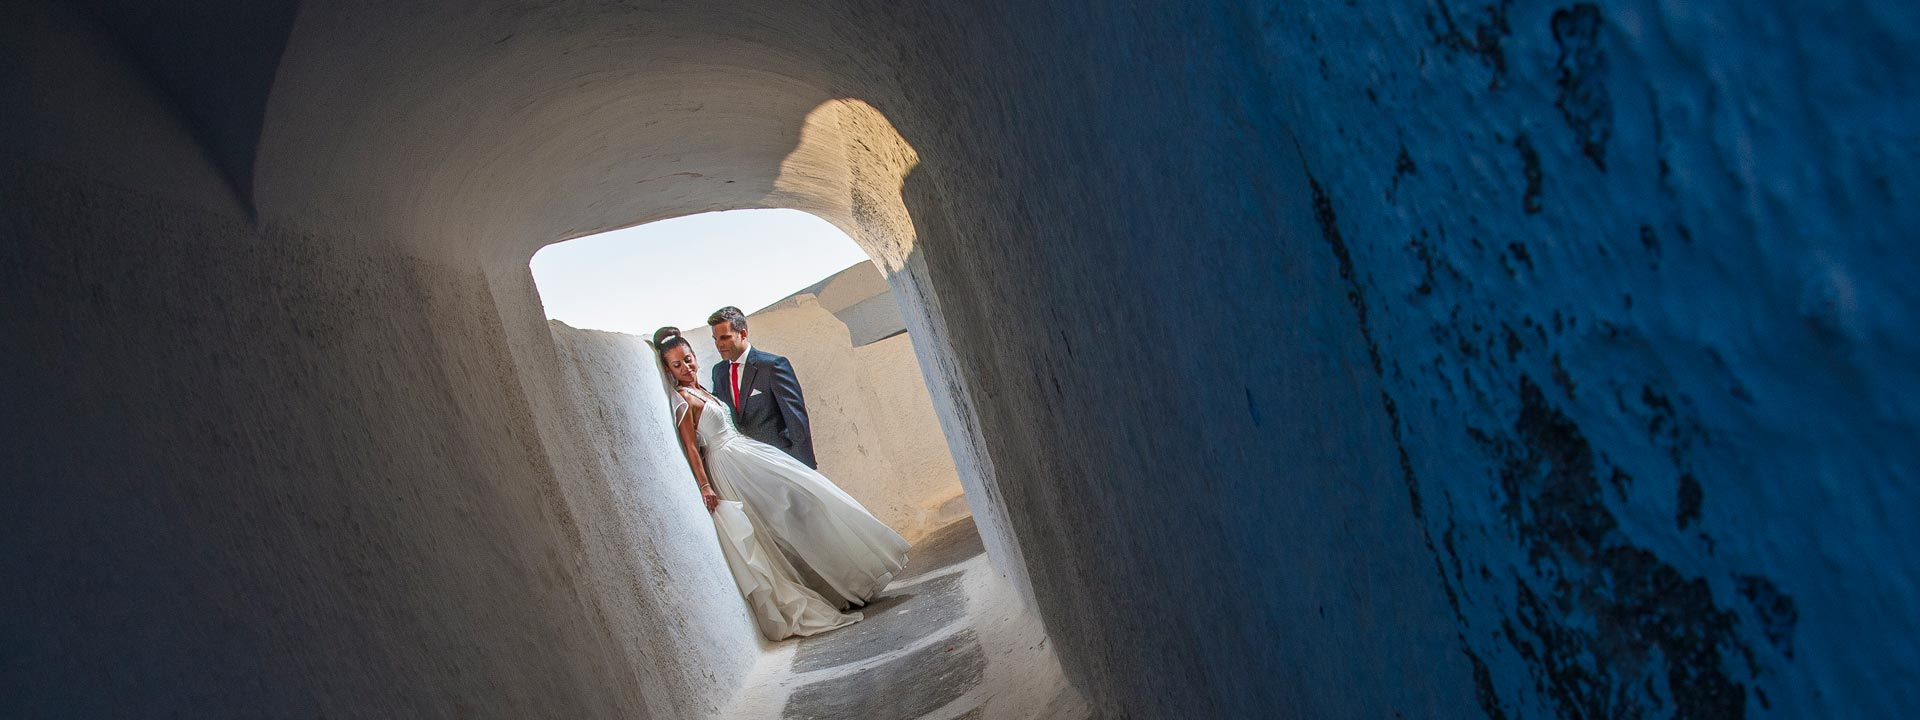 santorini-weddings-home-3